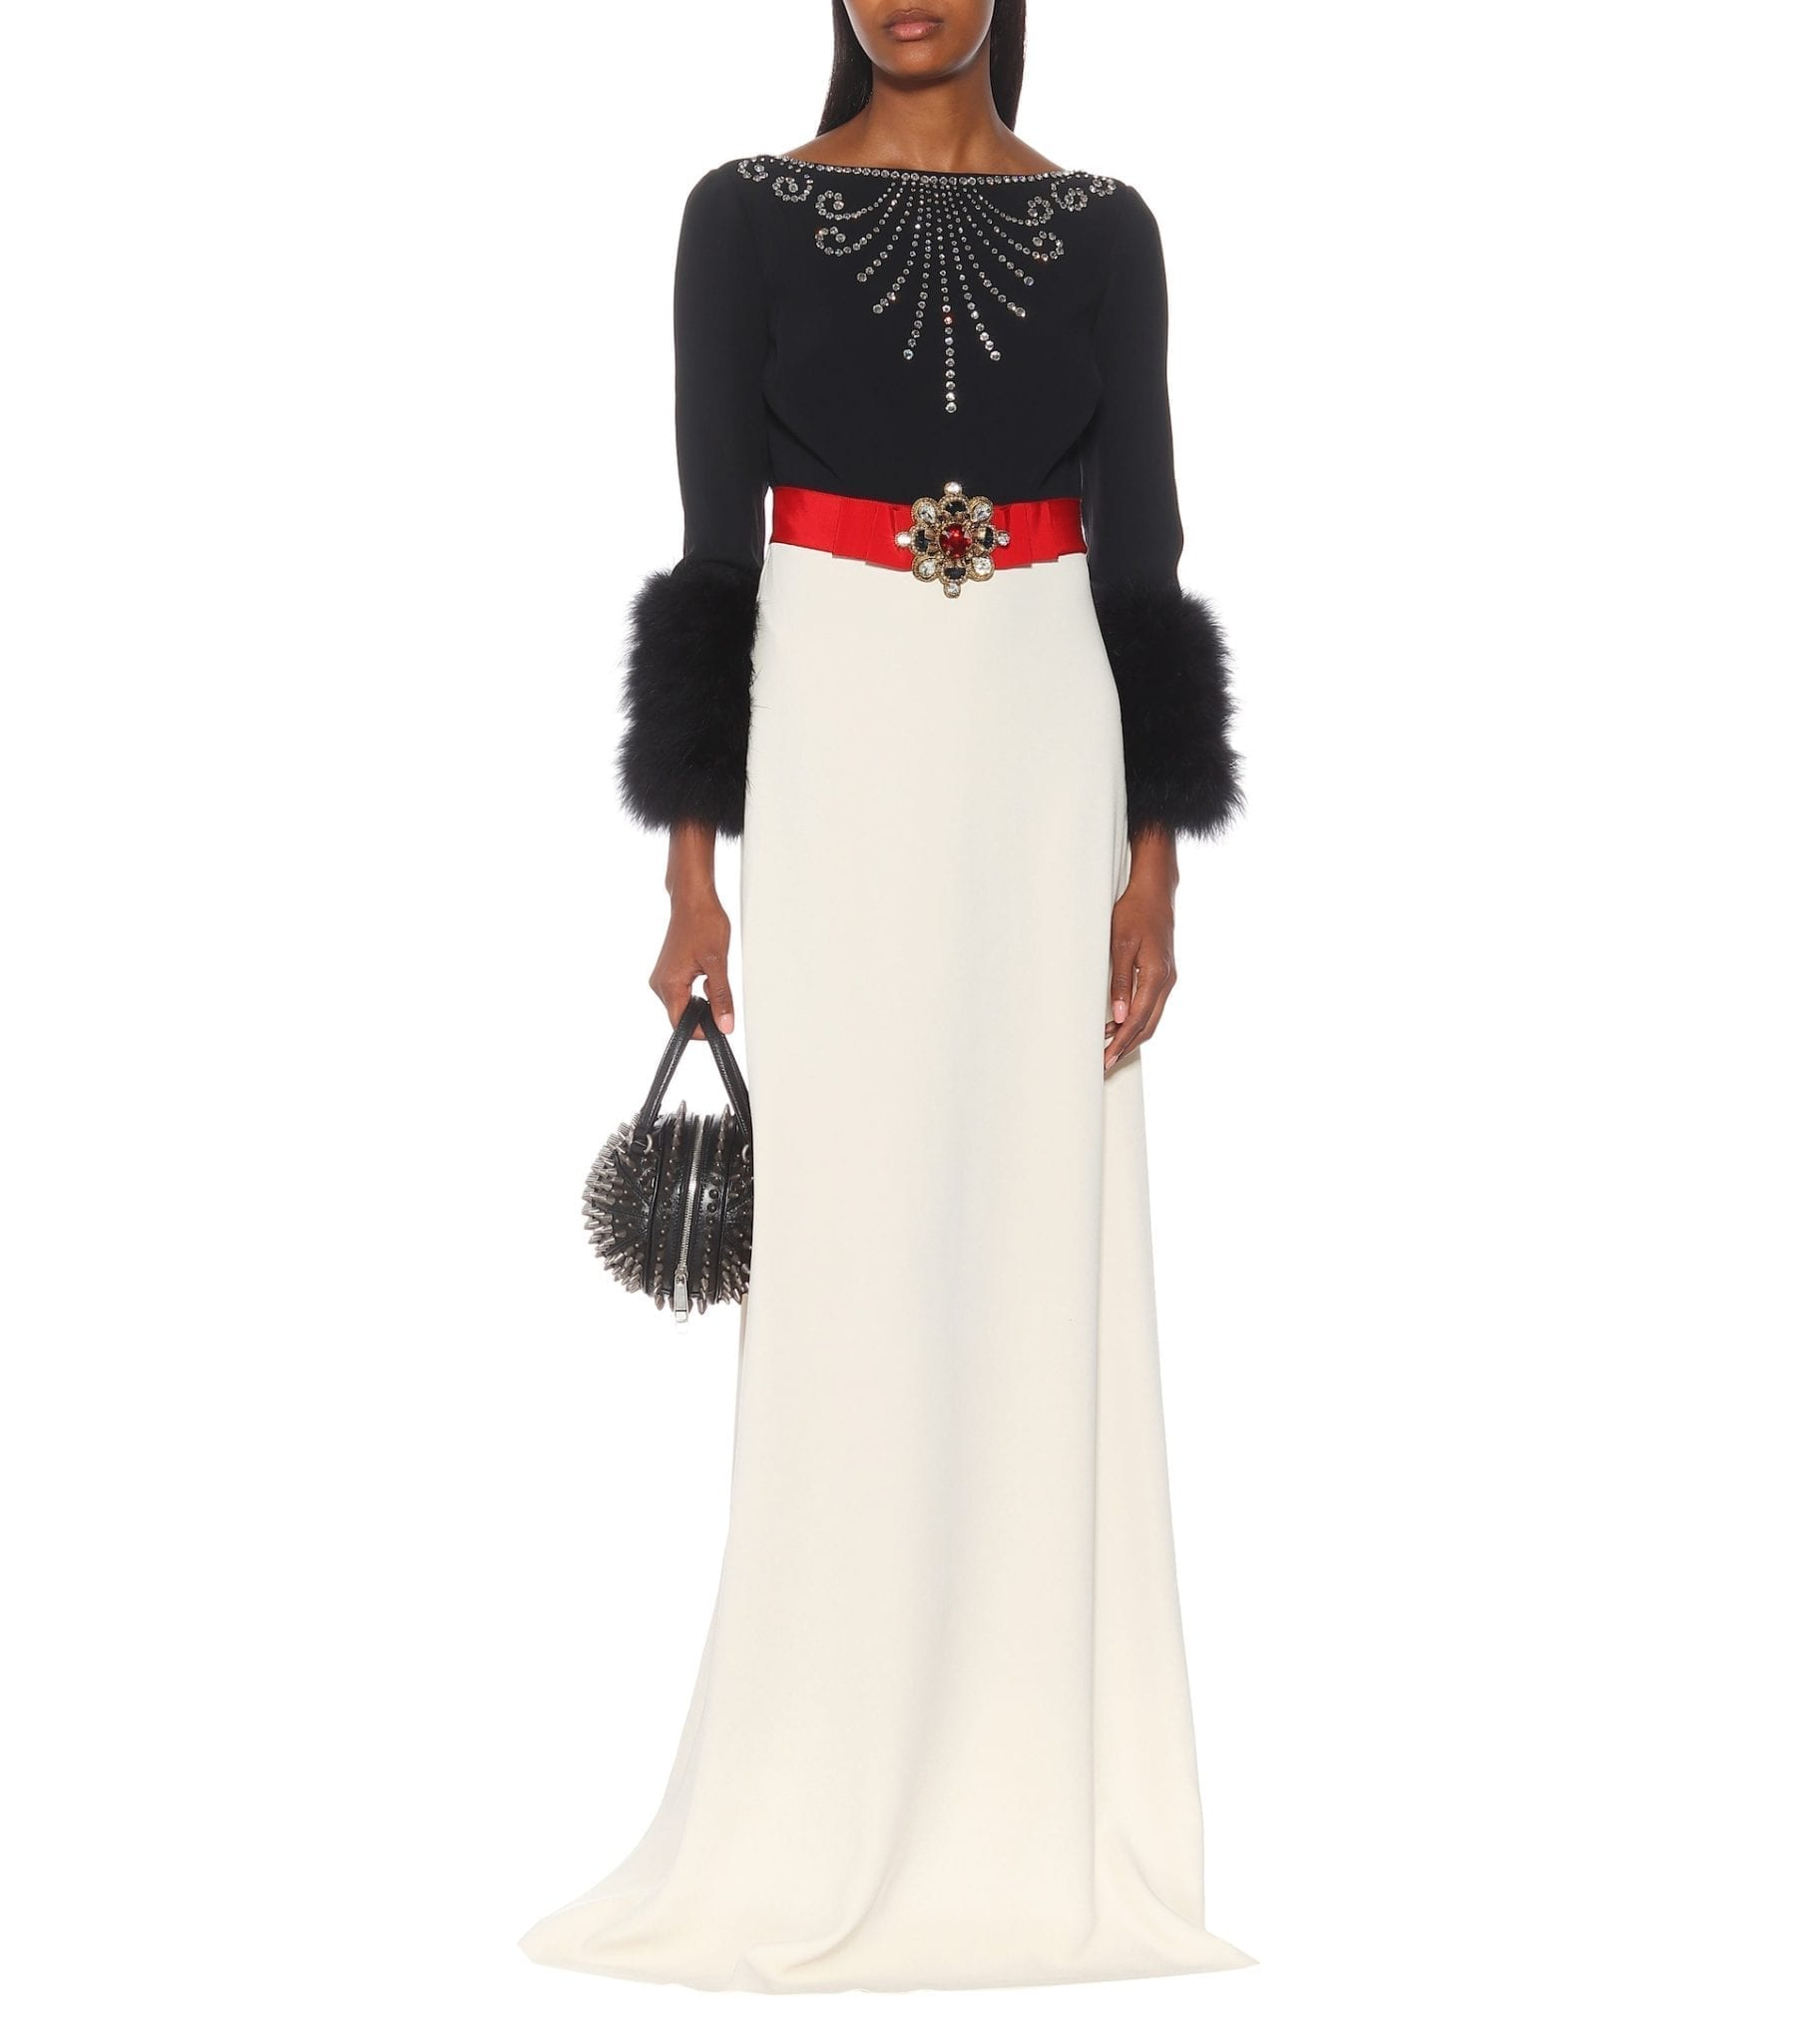 GUCCI Embellished Gown